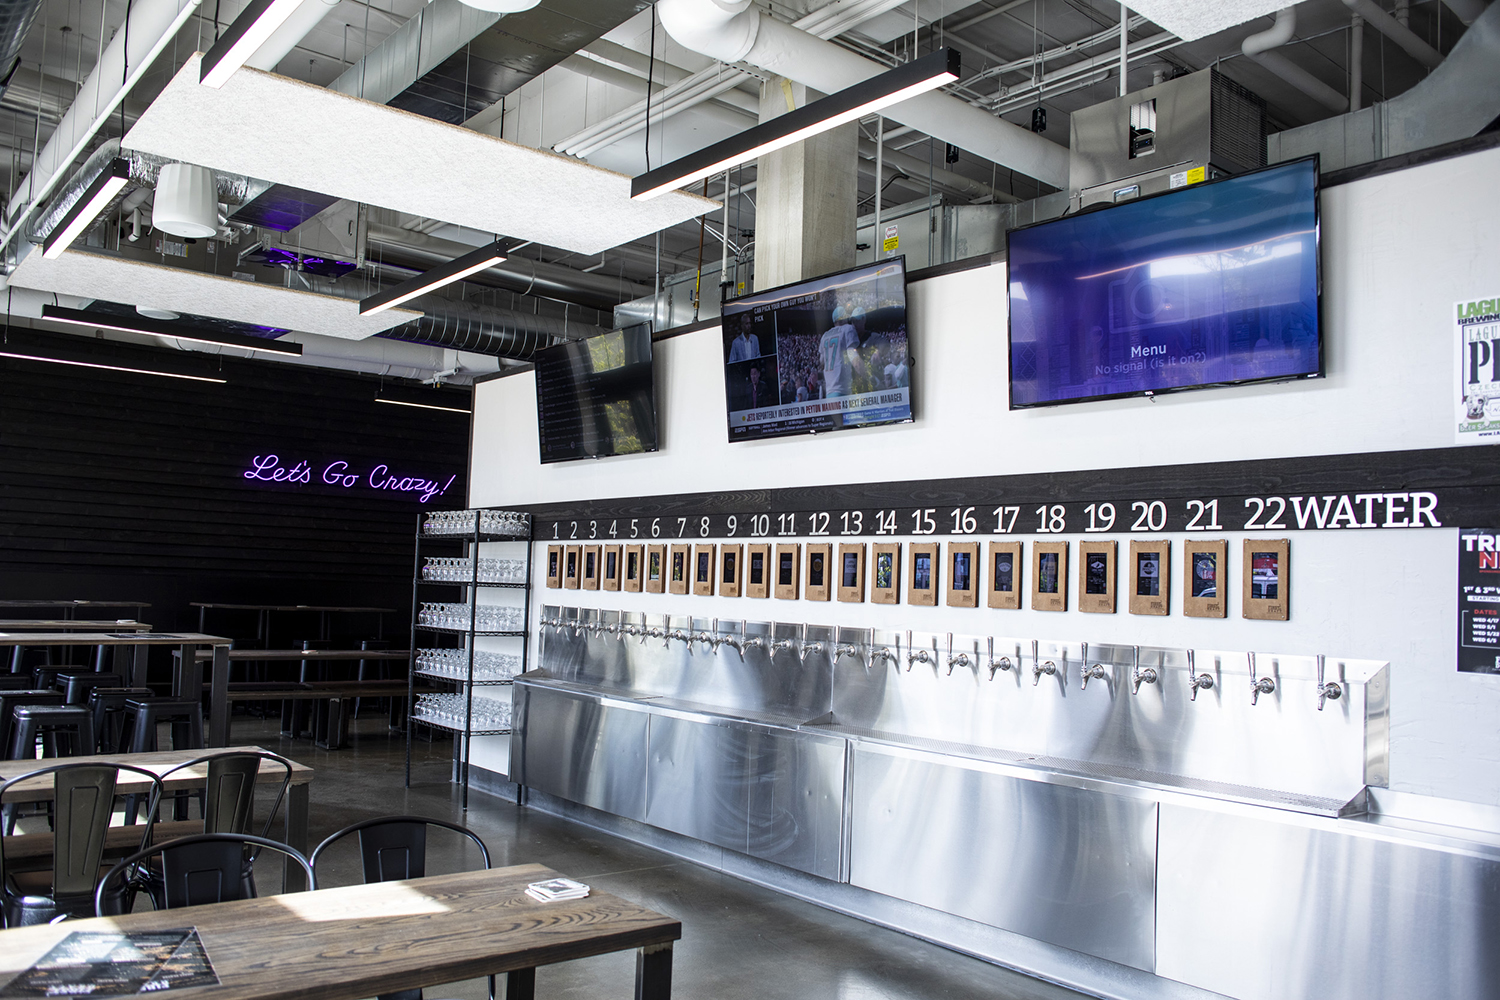 First Draft Taproom & Kitchen in Minneapolis is one of several self-pour bars that have opened in recent years // Photo by Tj Turner